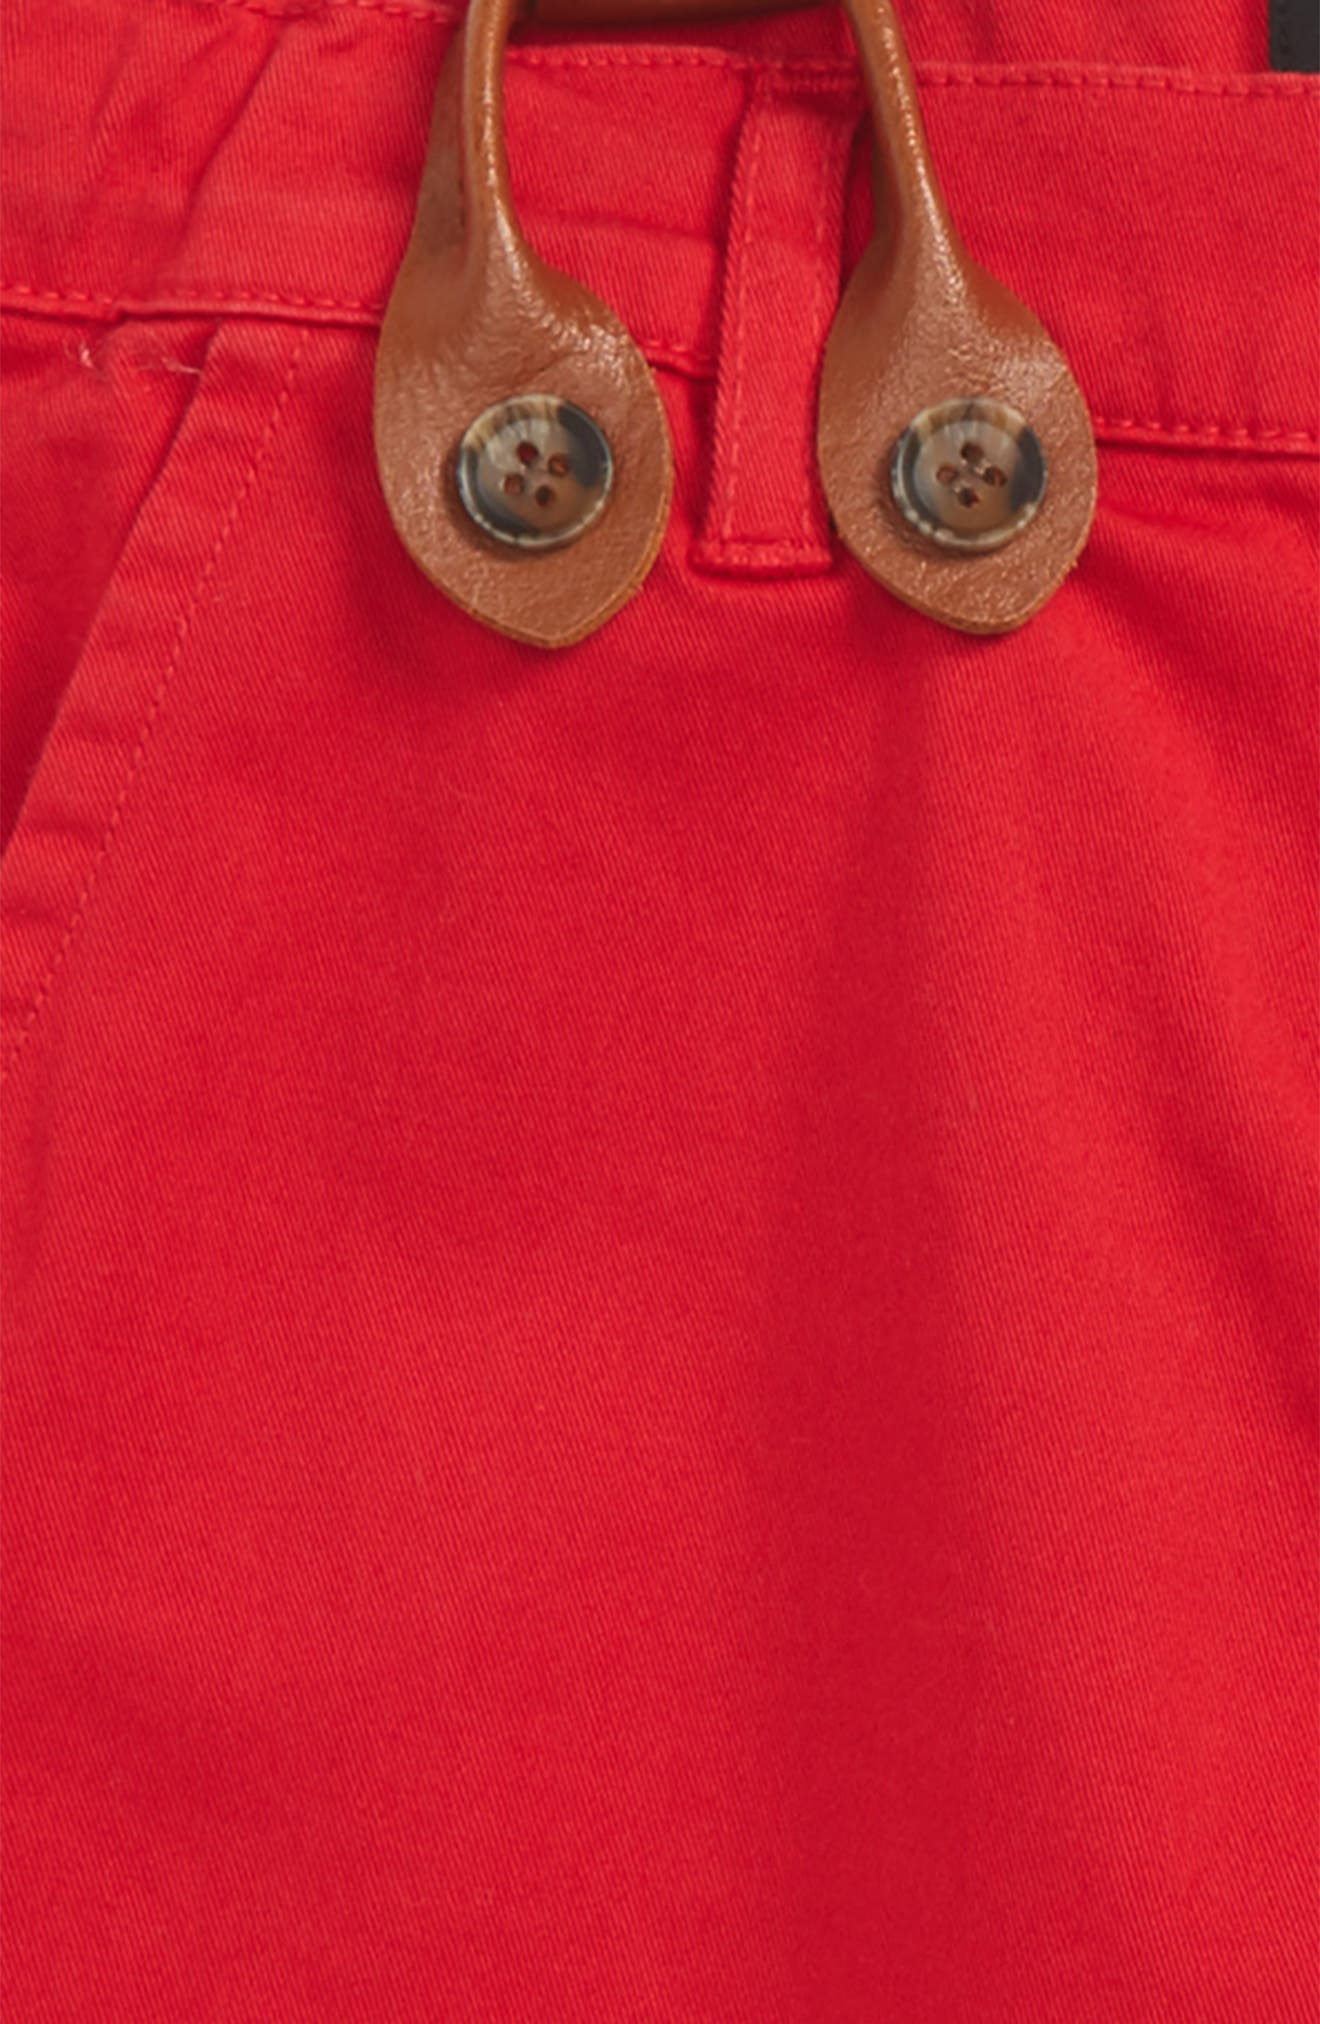 Chinos & Suspenders Set,                             Alternate thumbnail 2, color,                             620